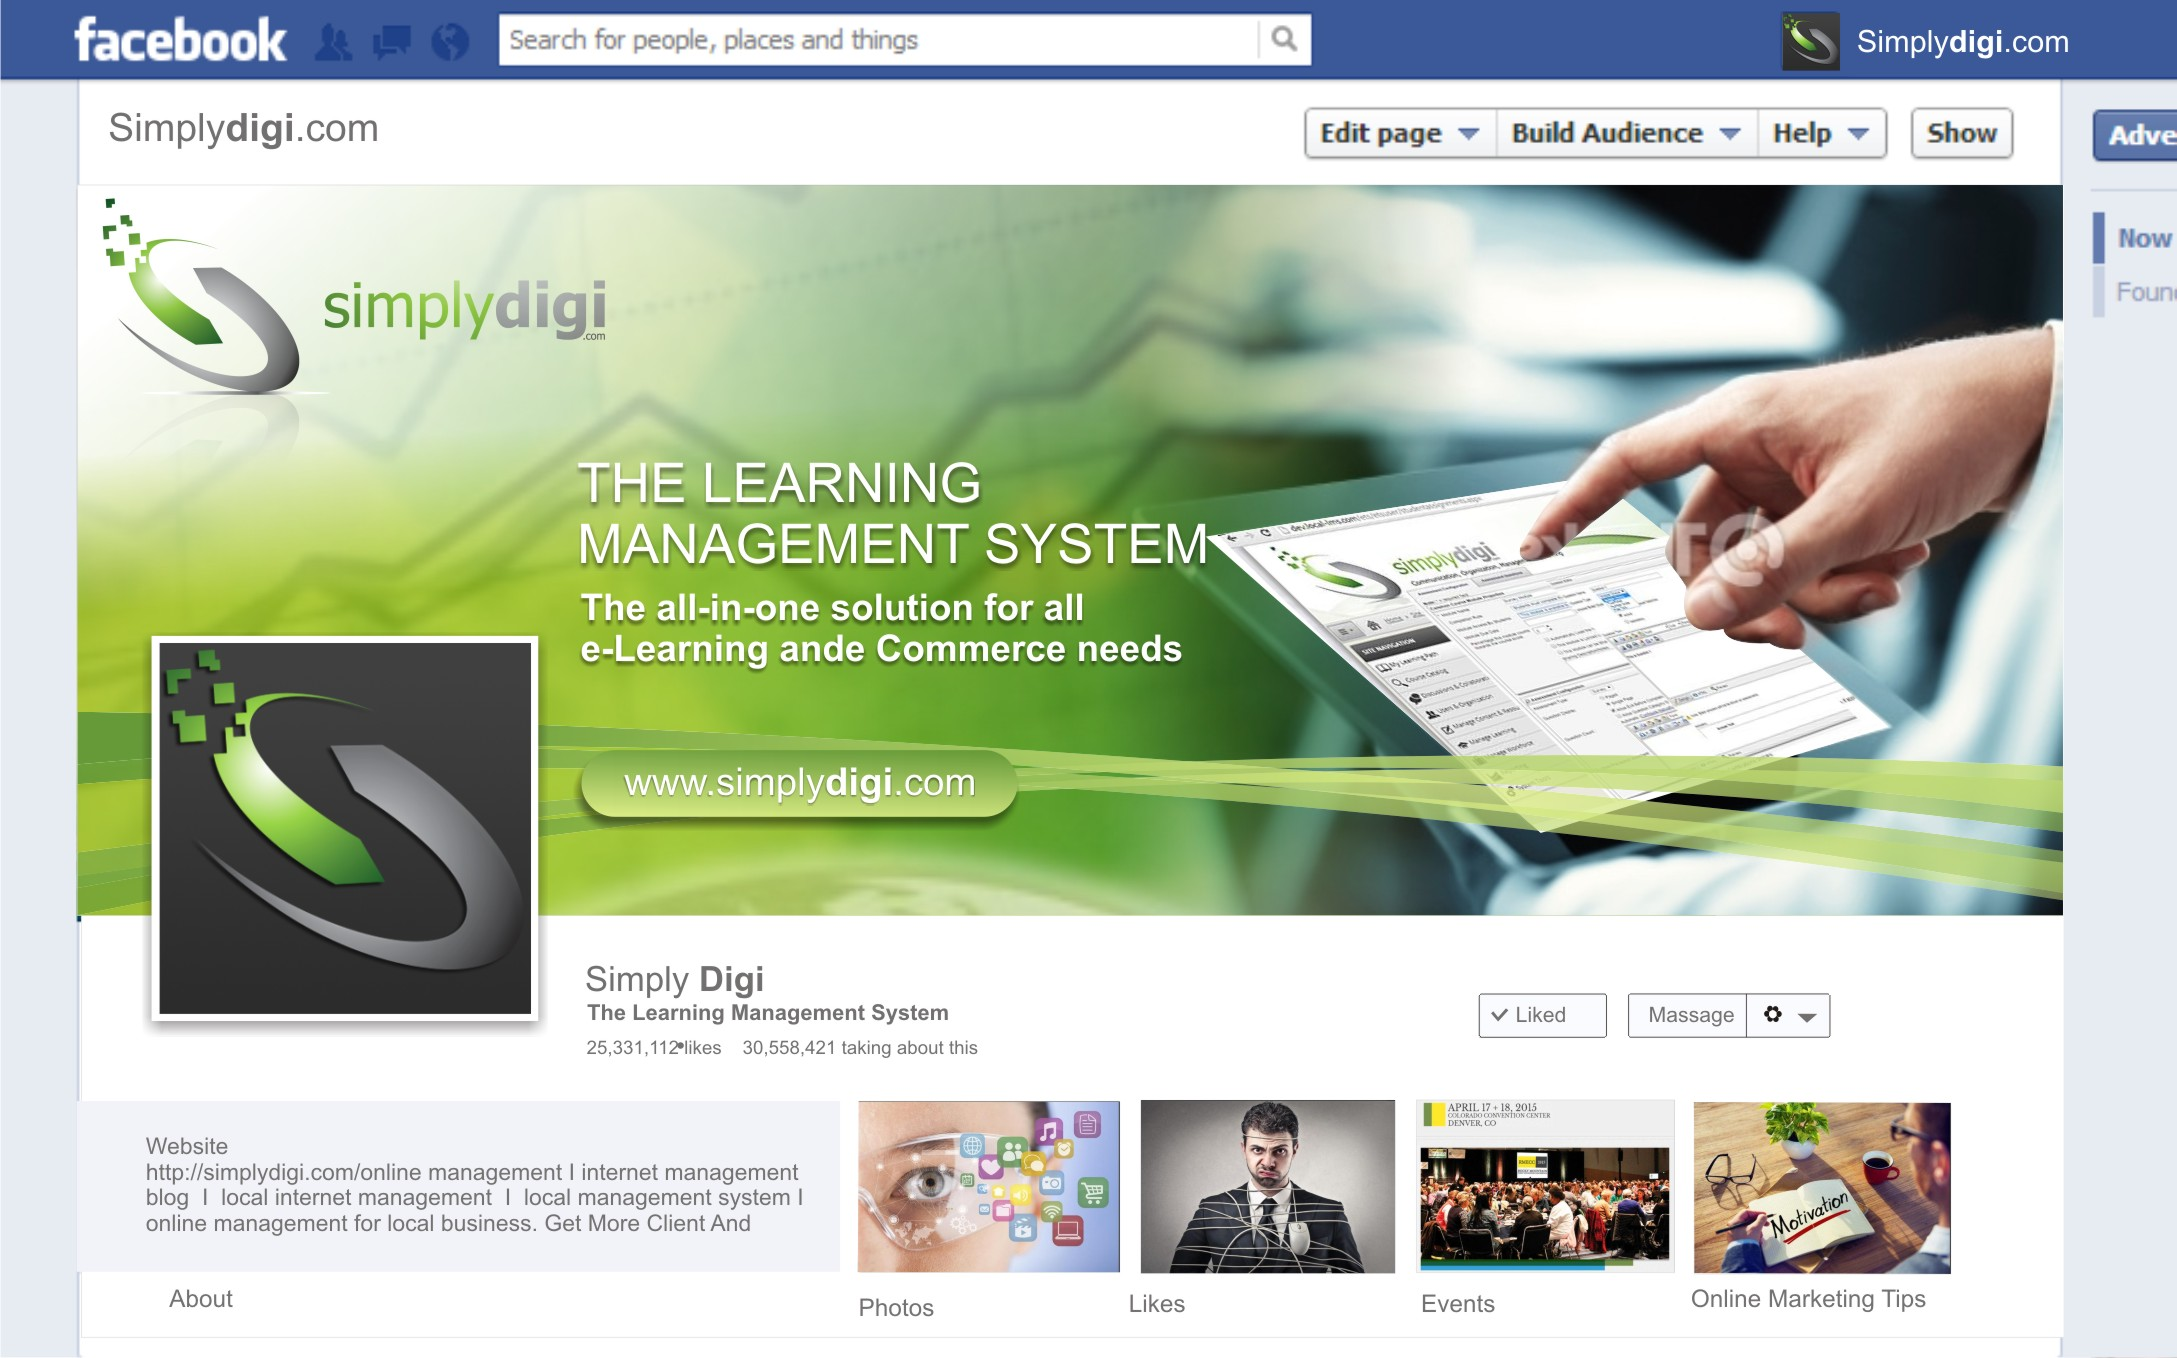 New Facebook Page Page Header Image and Logo Image - Education